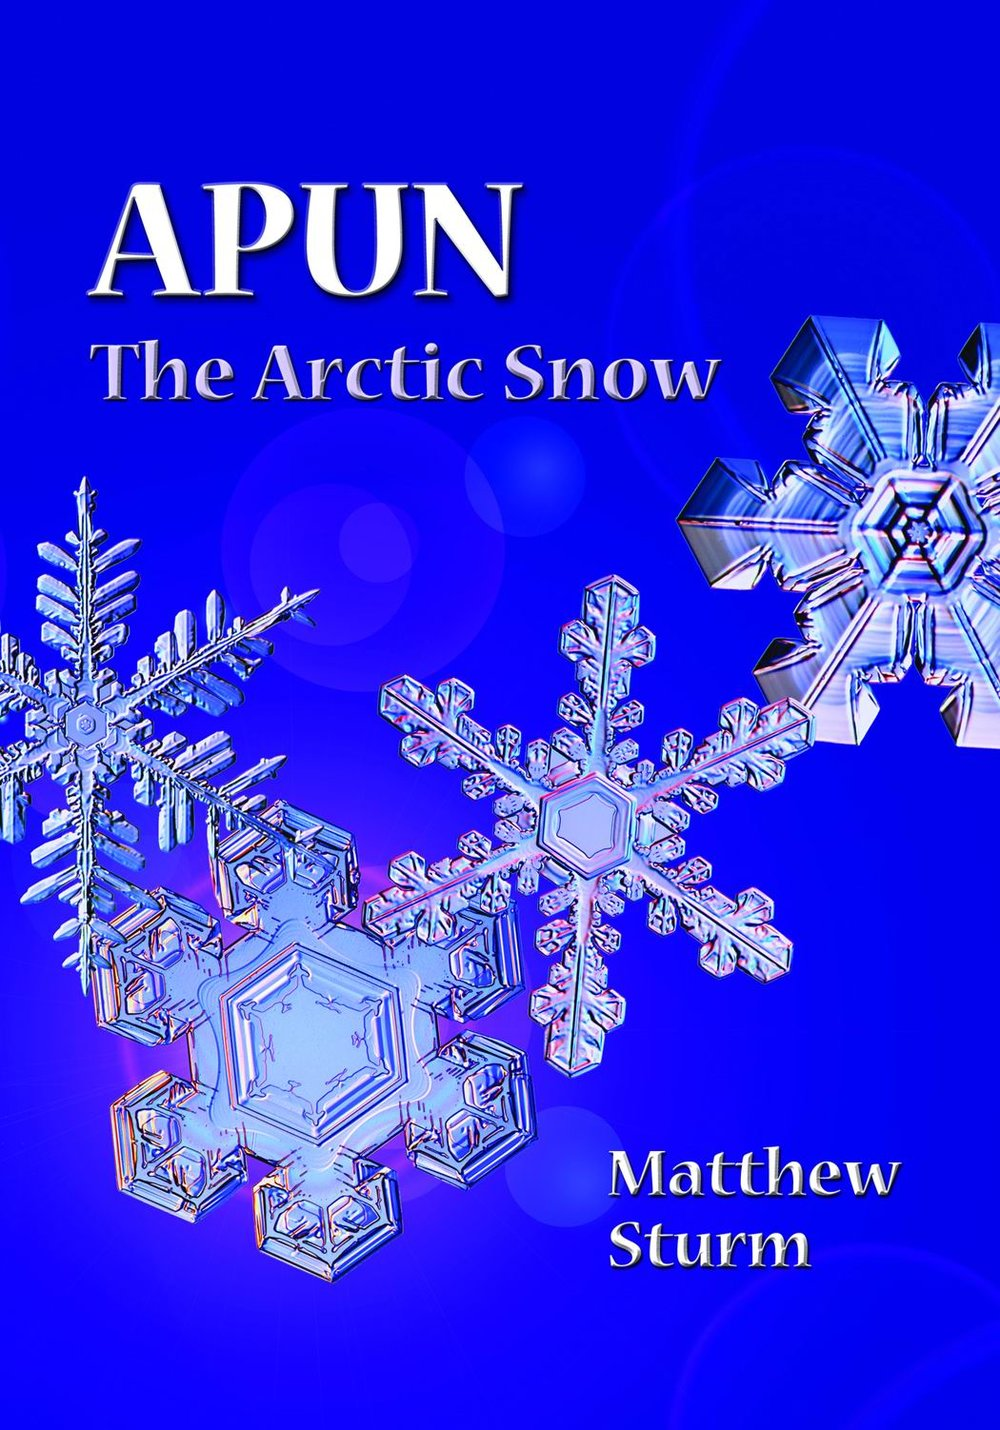 Apun children's cover front